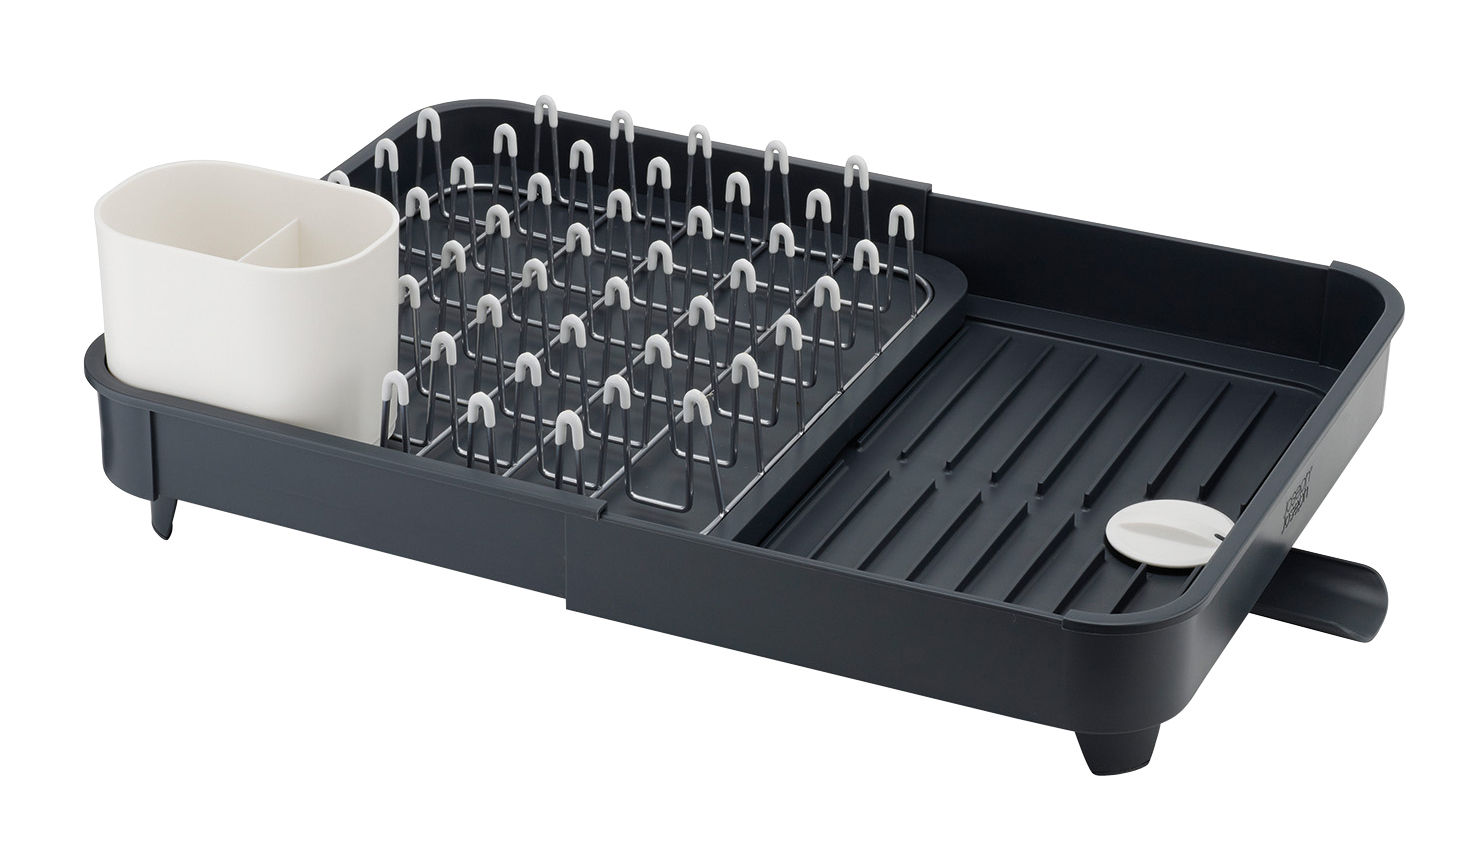 Kitchenware - Kitchen Sink Accessories - Extend Draining rack - Extensible by Joseph Joseph - Black - Plastic material, Steel